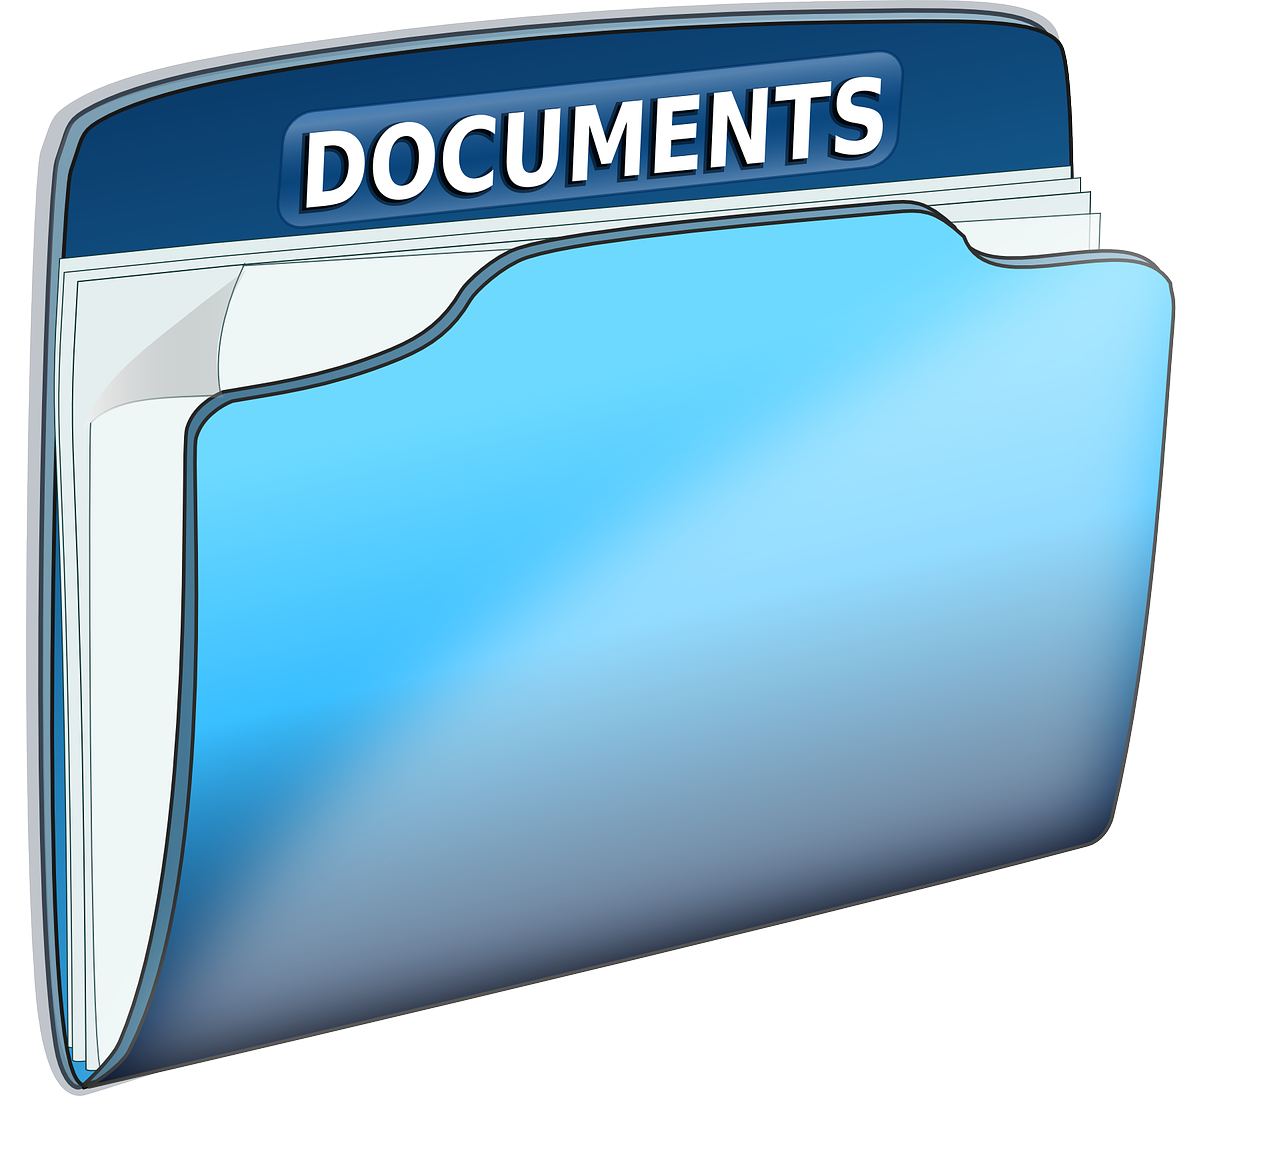 Documents to be attached when pending payment for services rendered and supplies